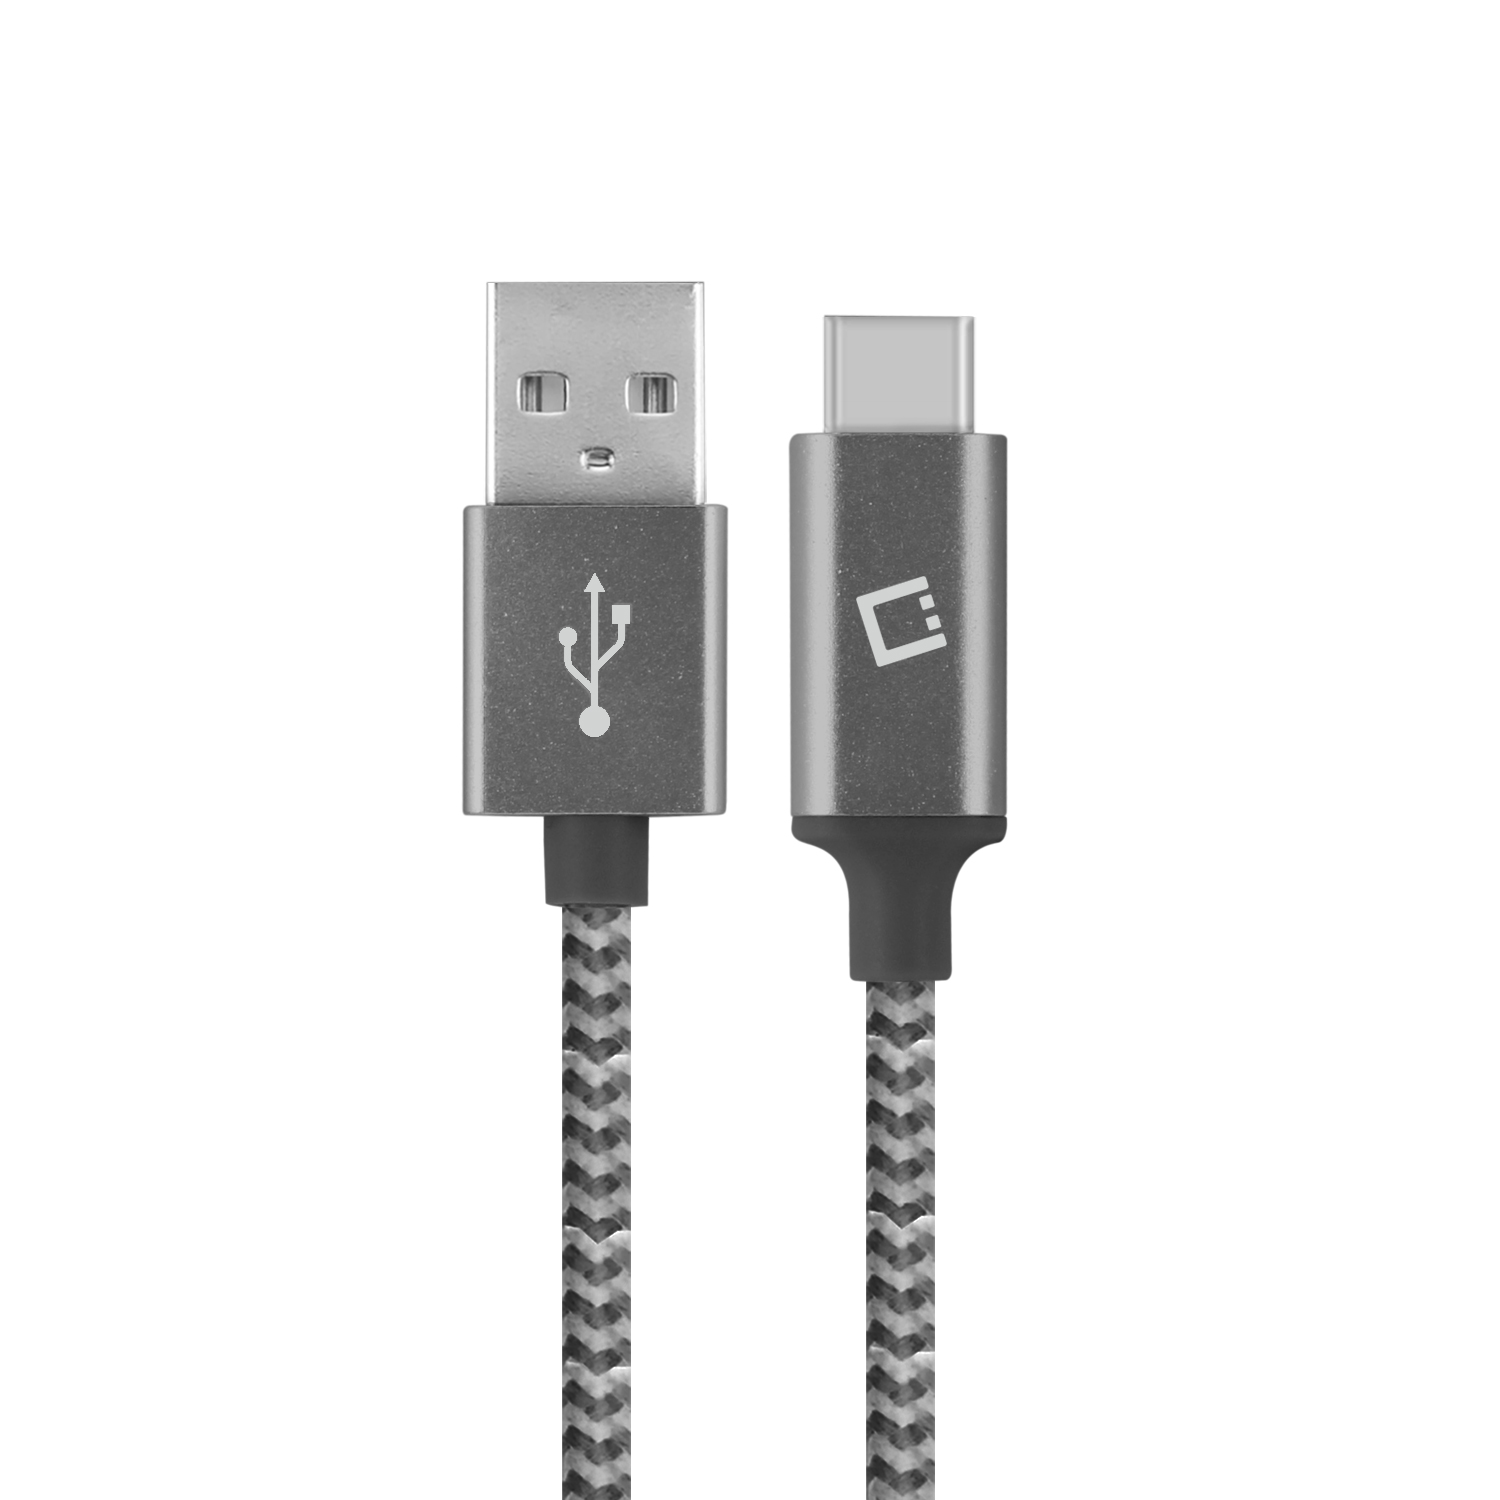 ZTE Axon M USB Type-C To Type-A Braided Data Power Cable Black 4ft Round